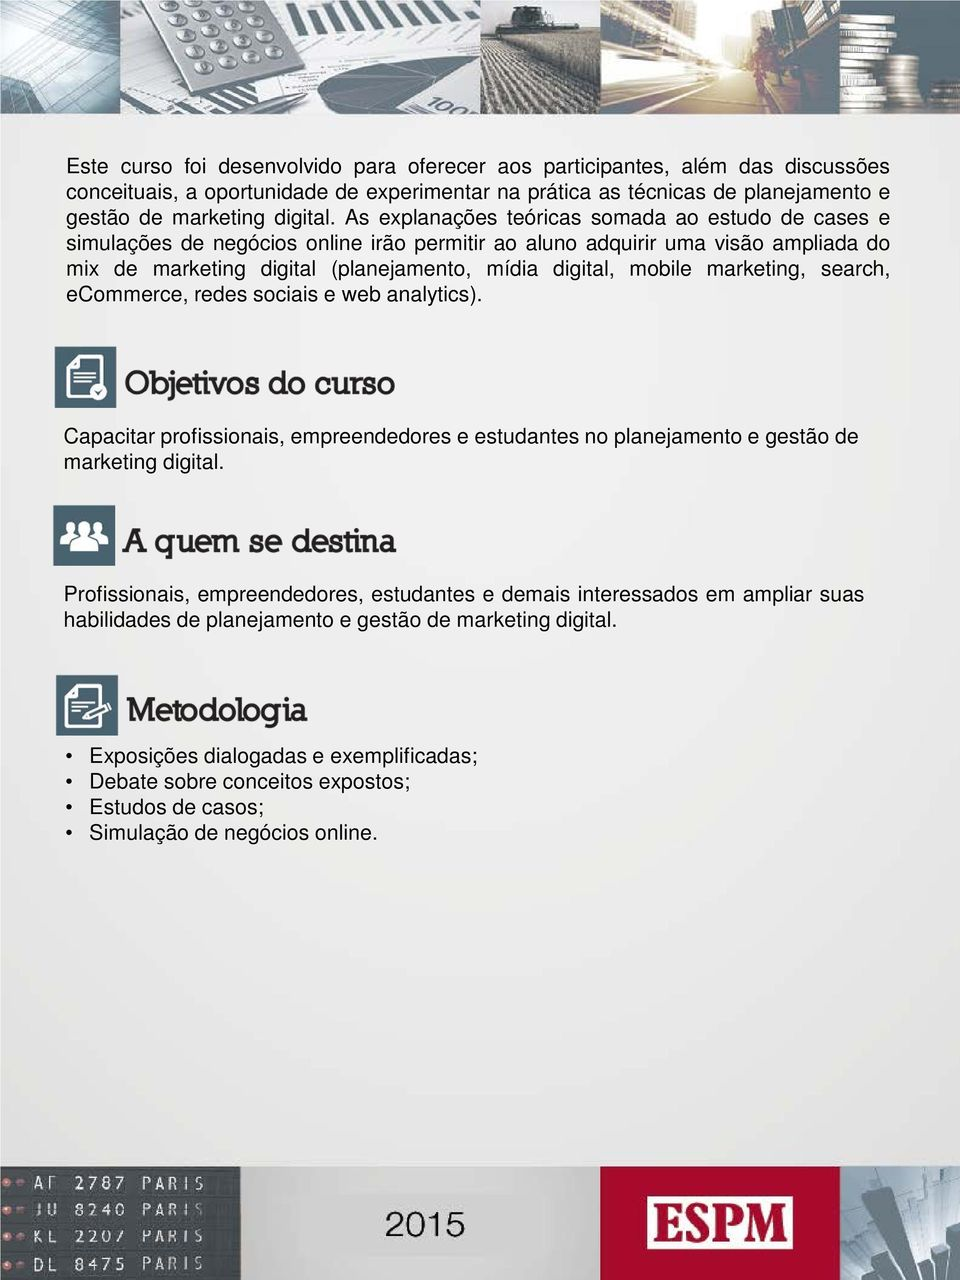 marketing, search, ecommerce, redes sociais e web analytics). Capacitar profissionais, empreendedores e estudantes no planejamento e gestão de marketing digital.